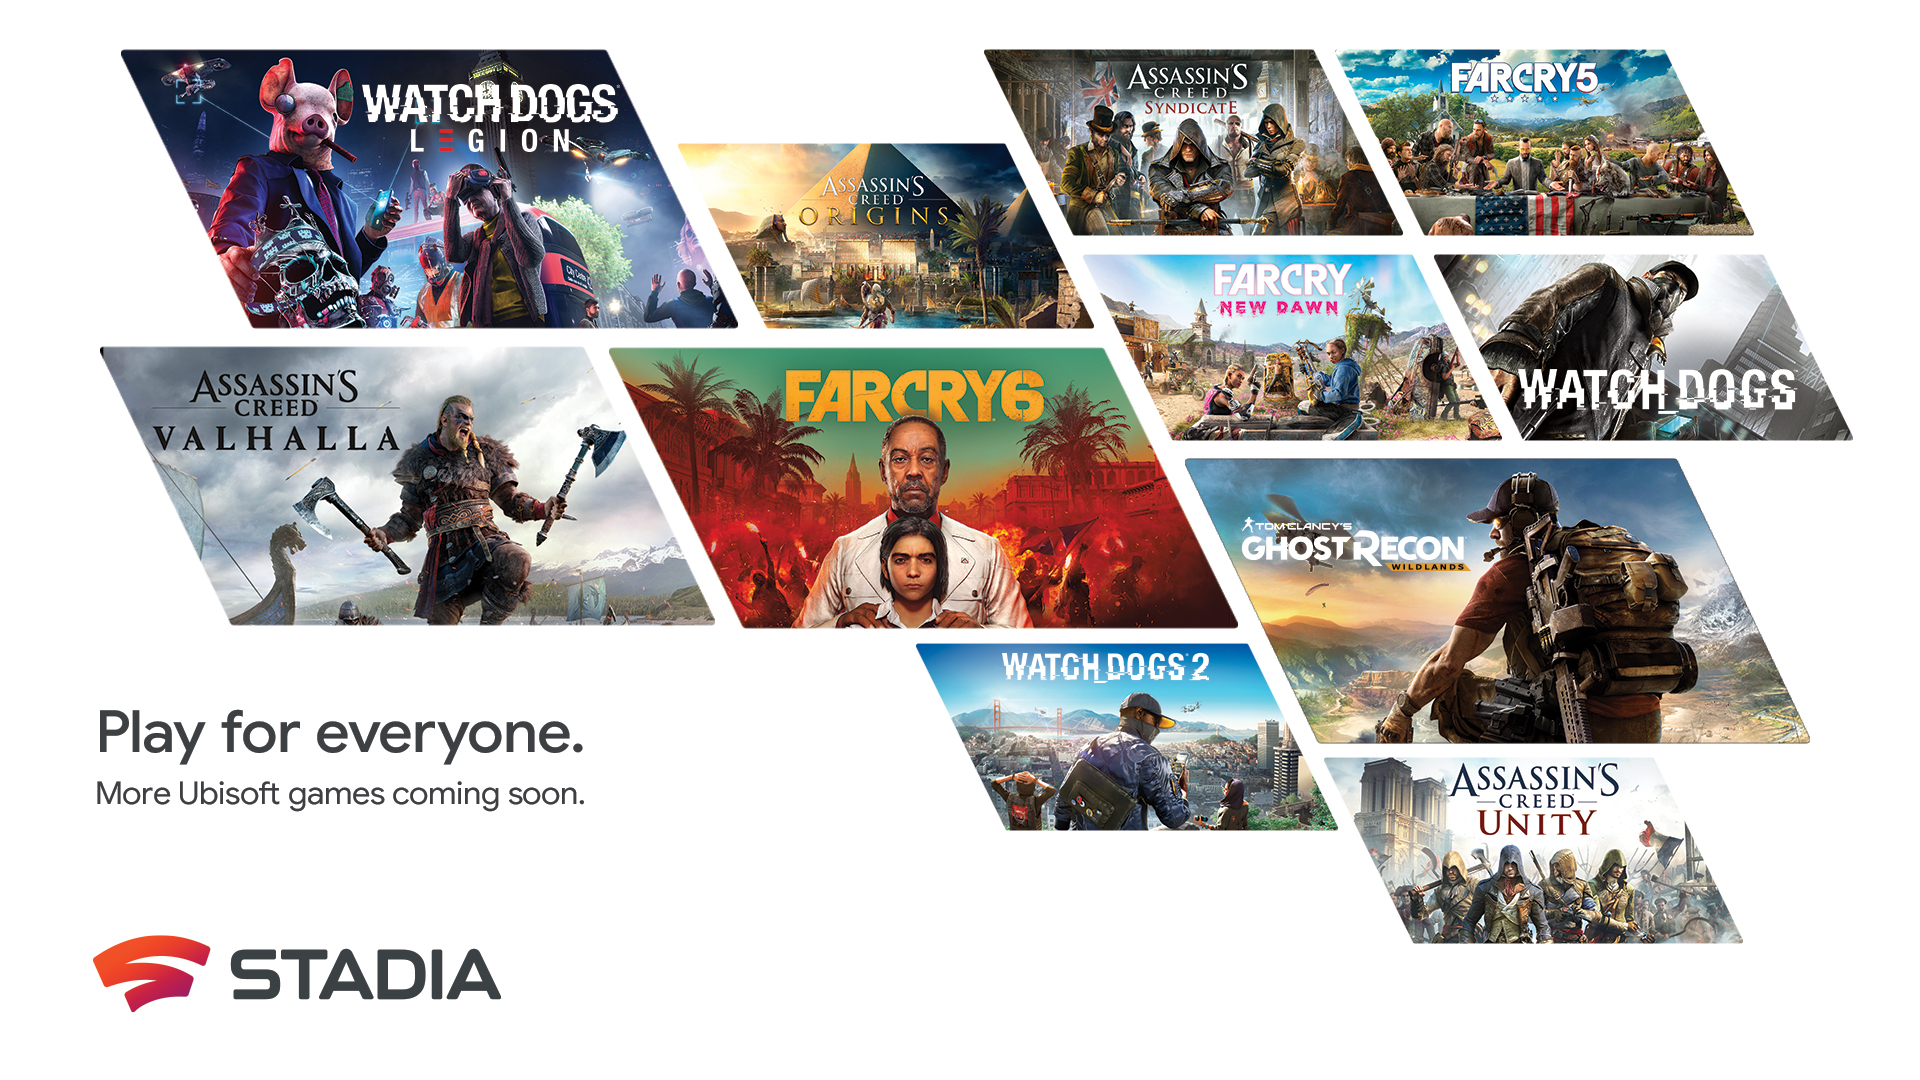 Ubisoft is bringing a back catalog of their games to Stadia, likely to make a UPlay+ announcement during upcoming event